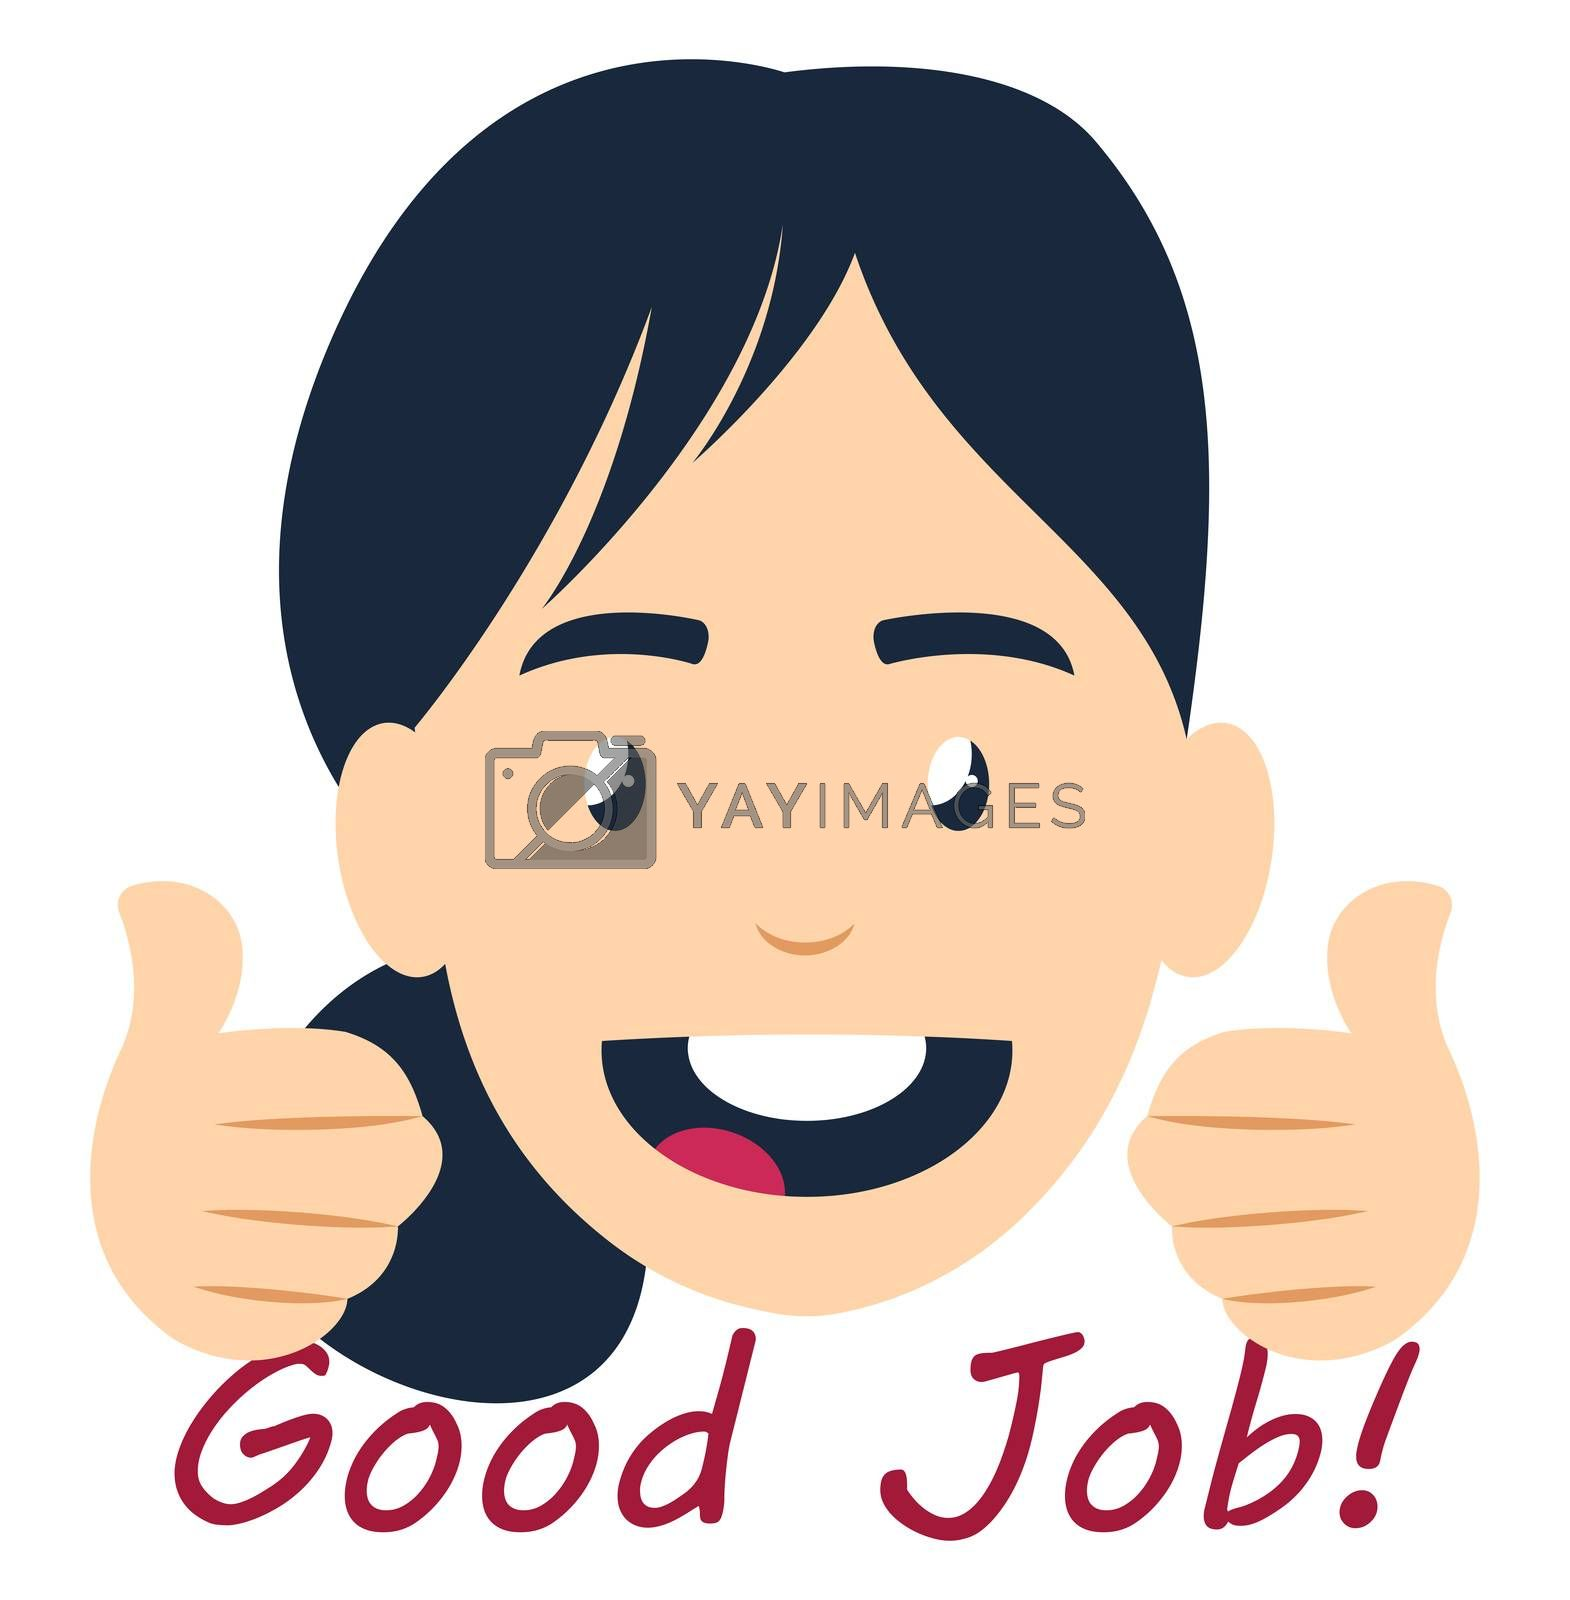 Girl saying good job, illustration, vector on white background